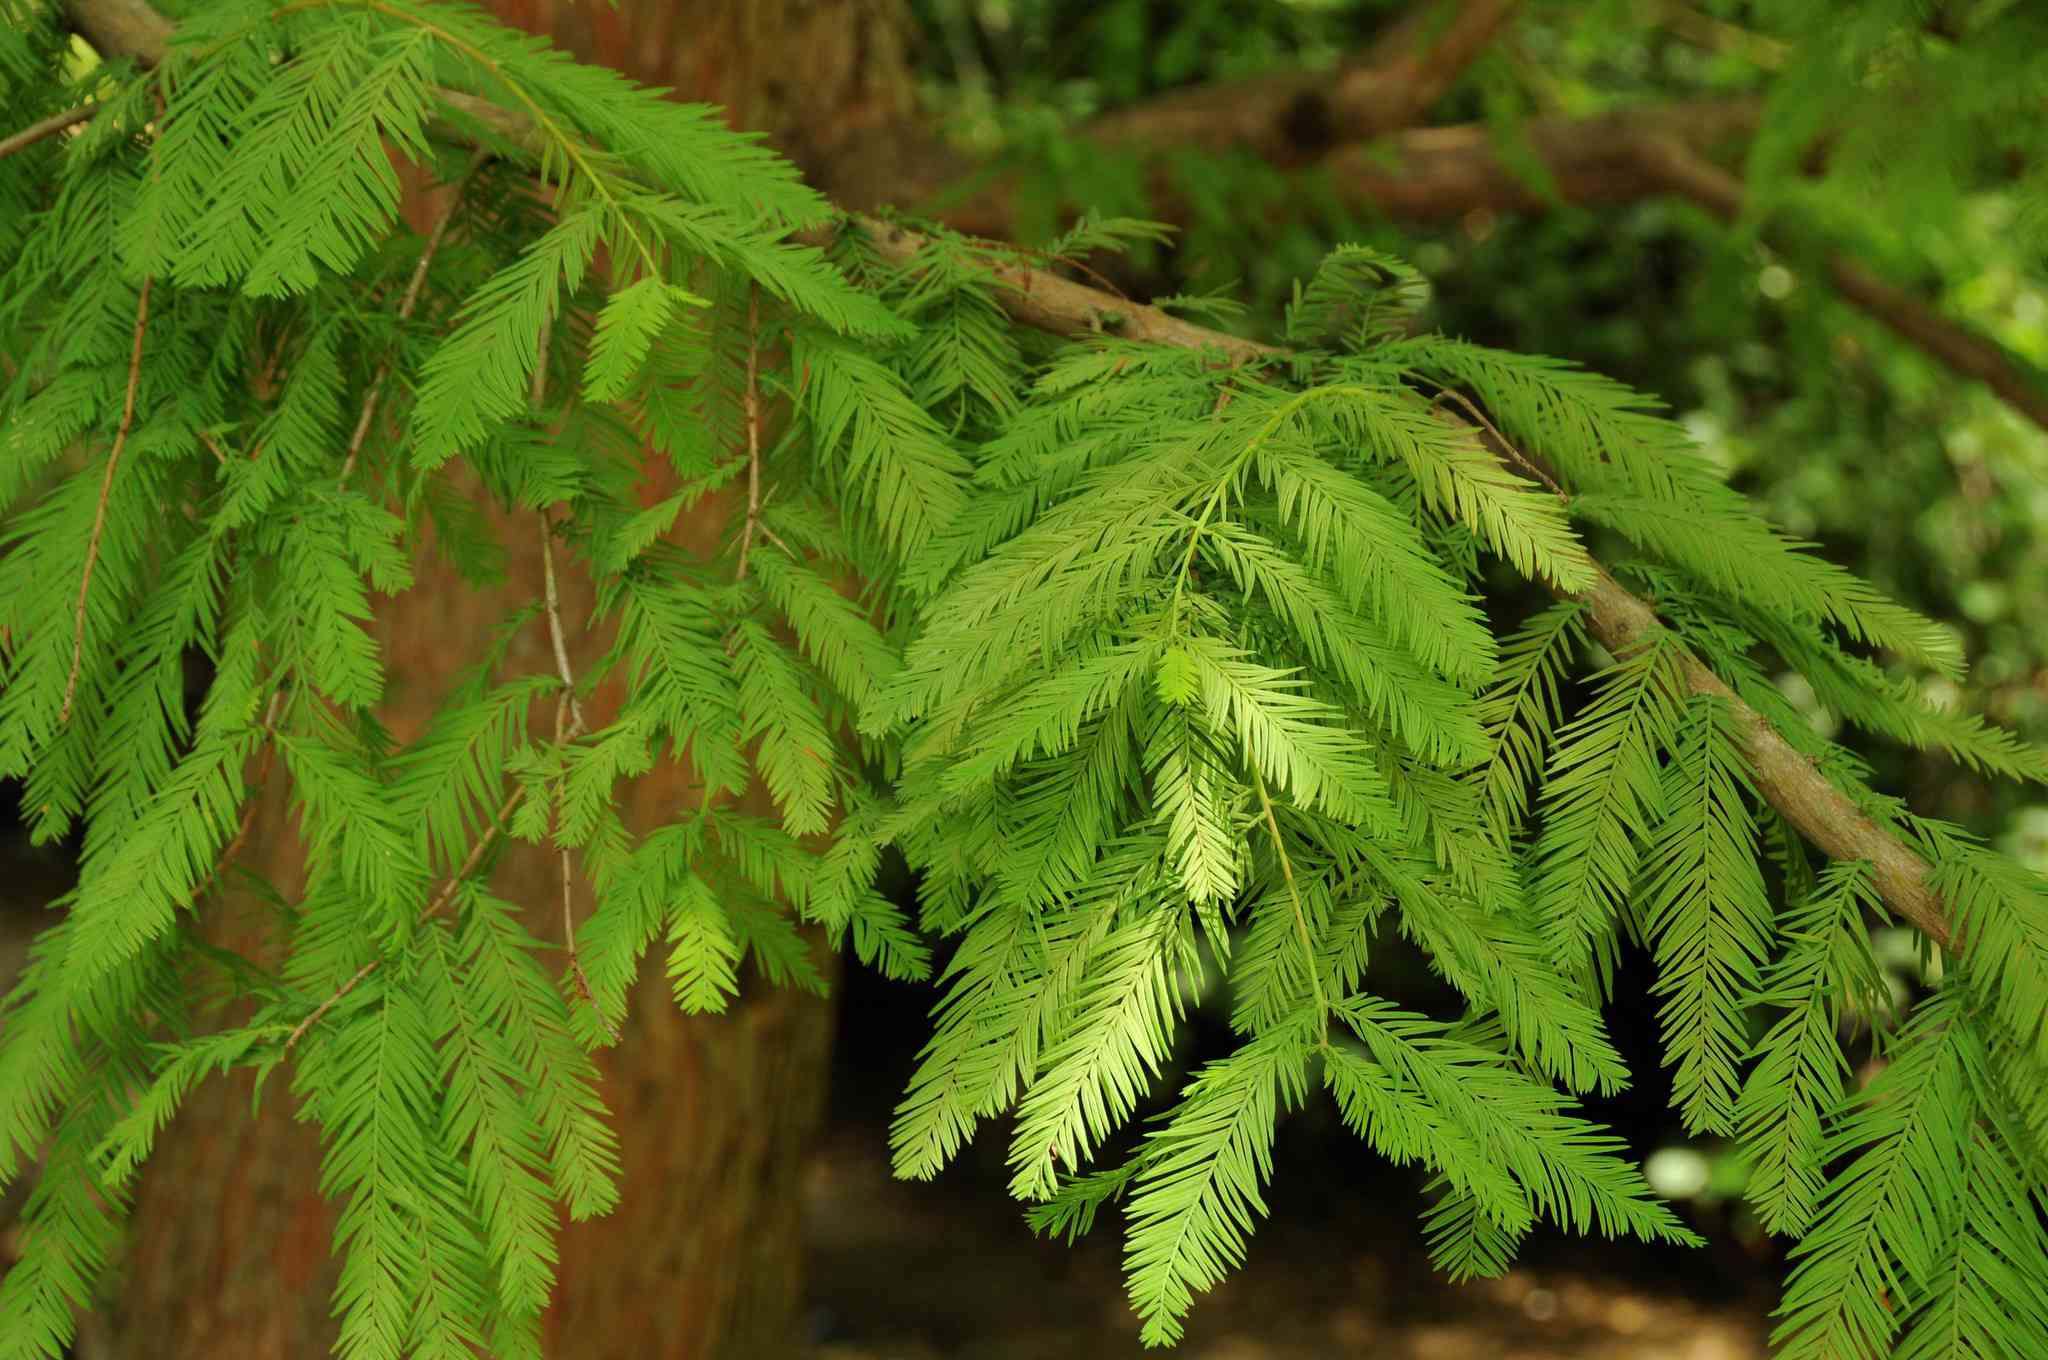 A closeup of the leaves of a Baldcypress tree.